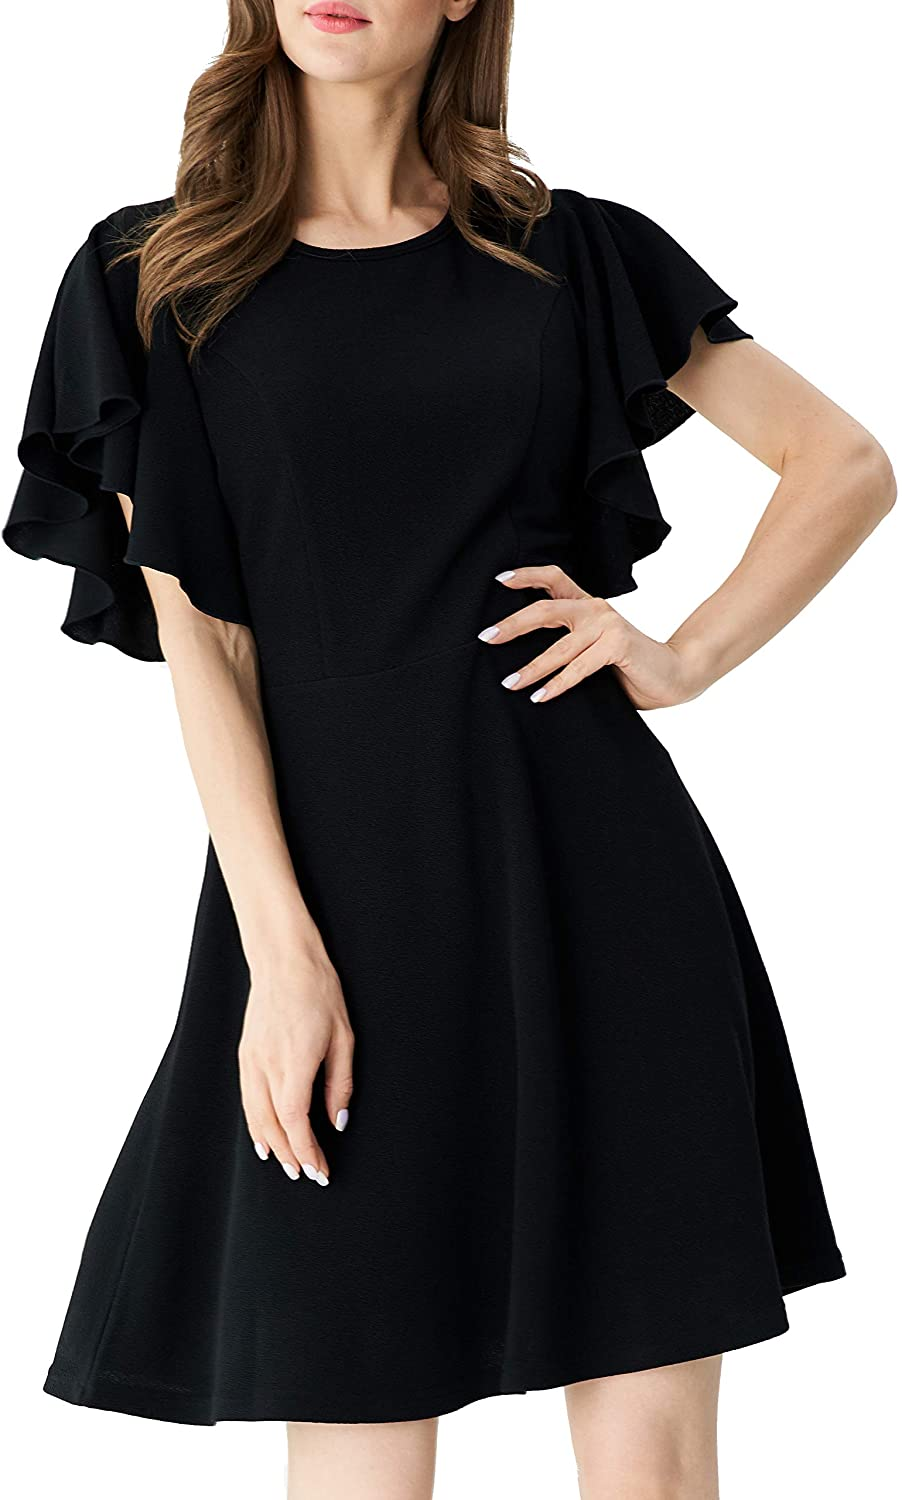 Aphratti Women's Flutter Sleeve Cute Fit and Flare Skater Cocktail Party Dress